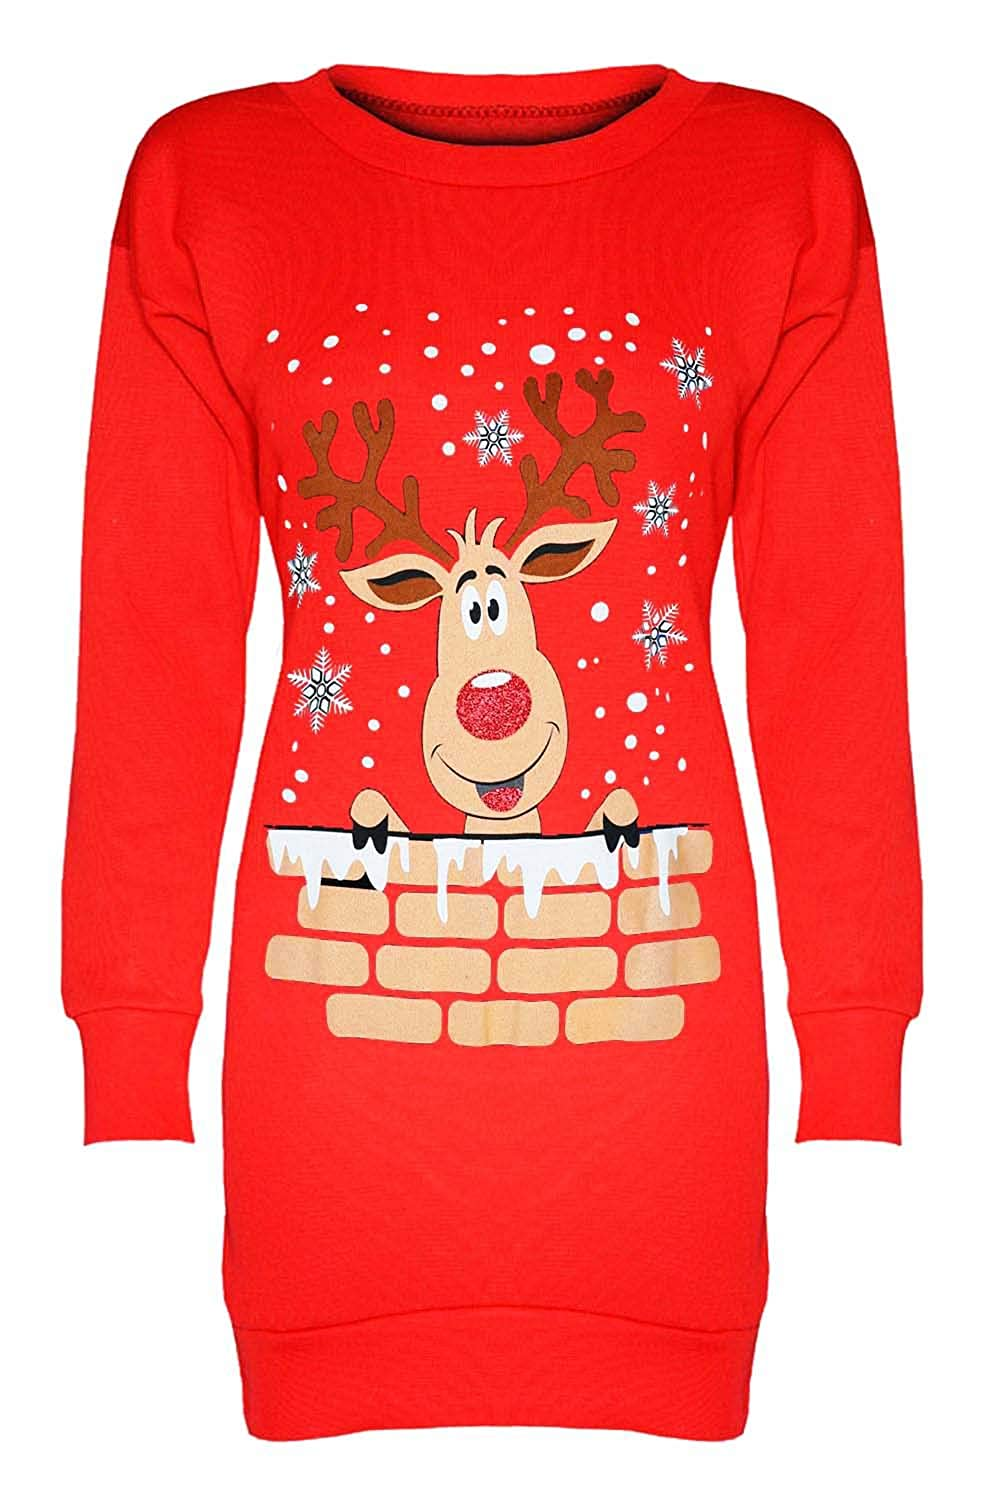 Fashion Star Womens Christmas Sweatshirt Ladies Xmas Two Reindeer Print Fleece Knitted Long Dress Long Sleeve Jumper Oversized Baggy Mini Dress Top